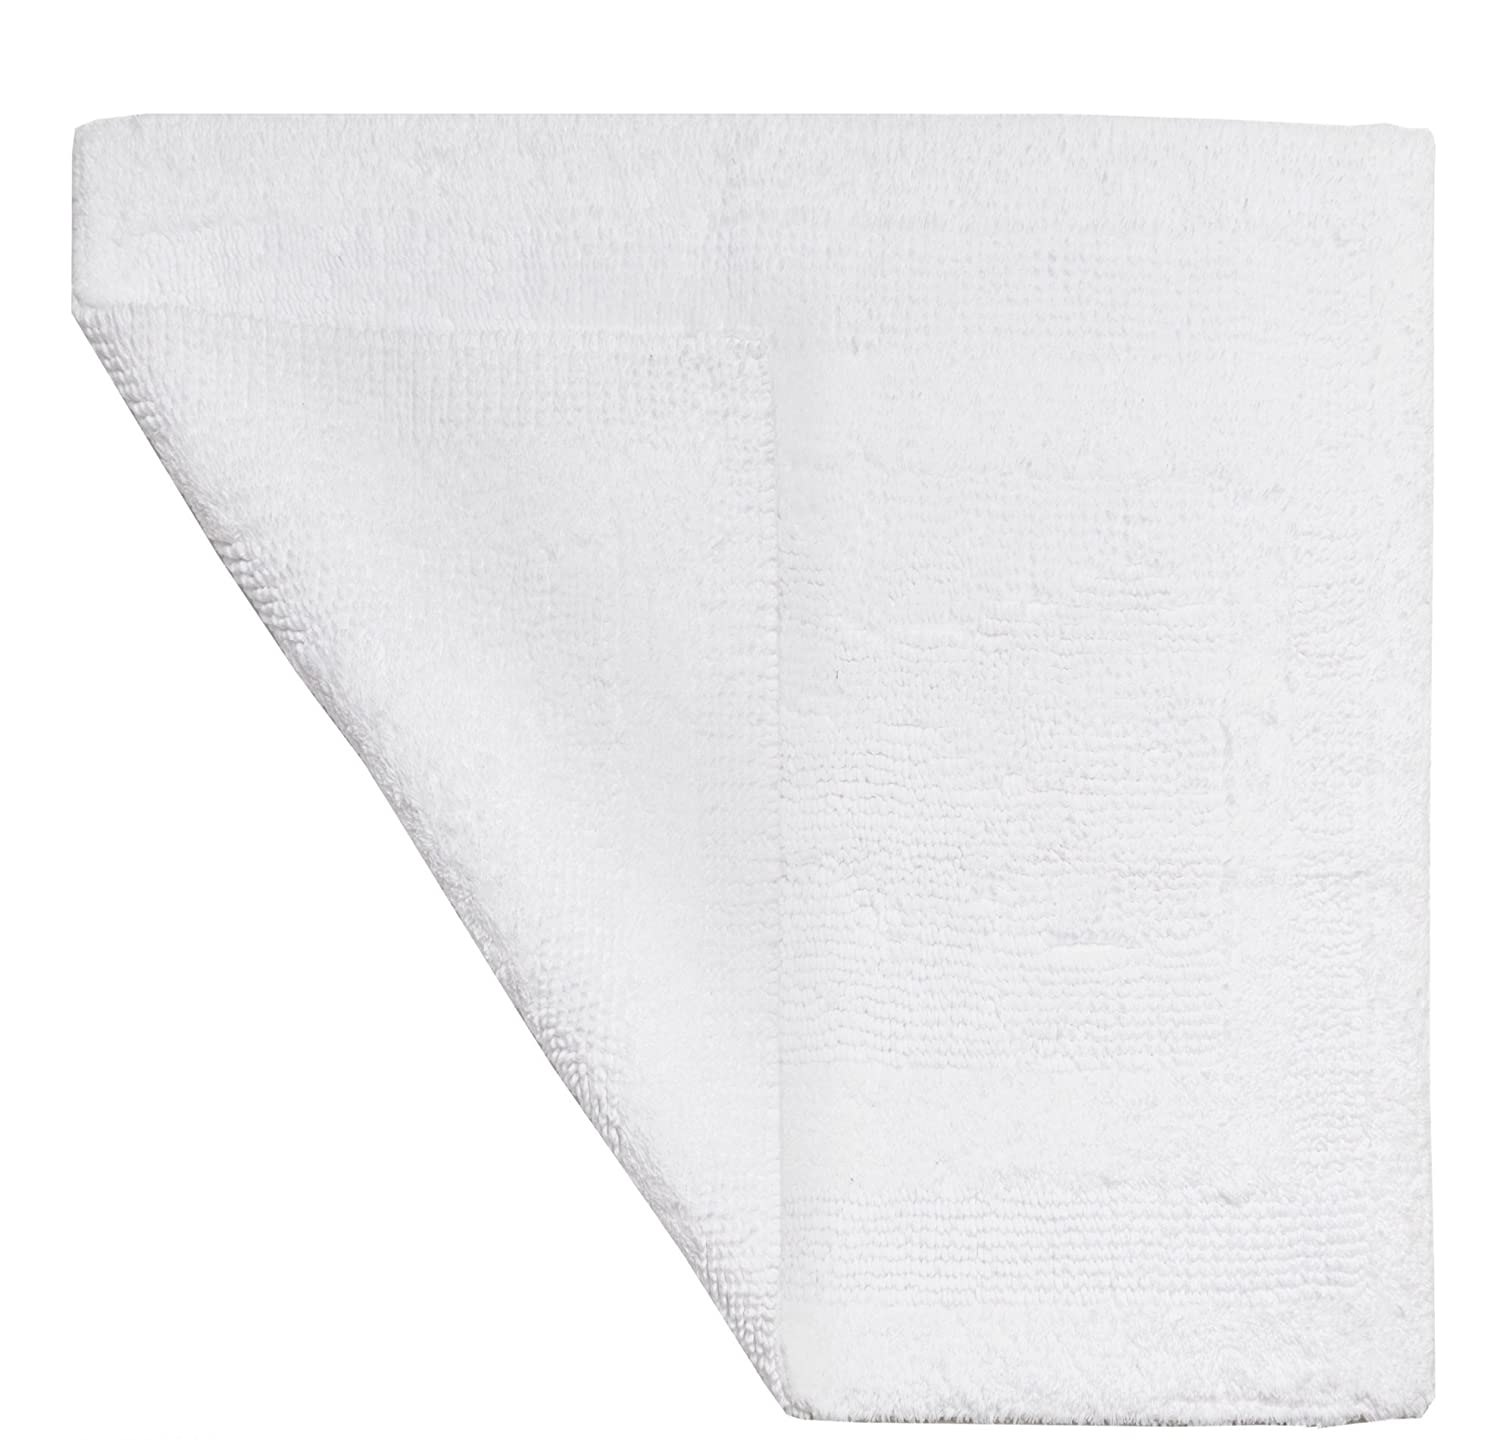 1 Piece 21 X 34 White Hydro Soft Bath Rug, Ice Large Solid Color Plush Super Soft Comfort Mat Reversible Fast Drying Absorbent Step Out Shower Sink Jack And Jill Bathroom Bathmat Luxury Cotton